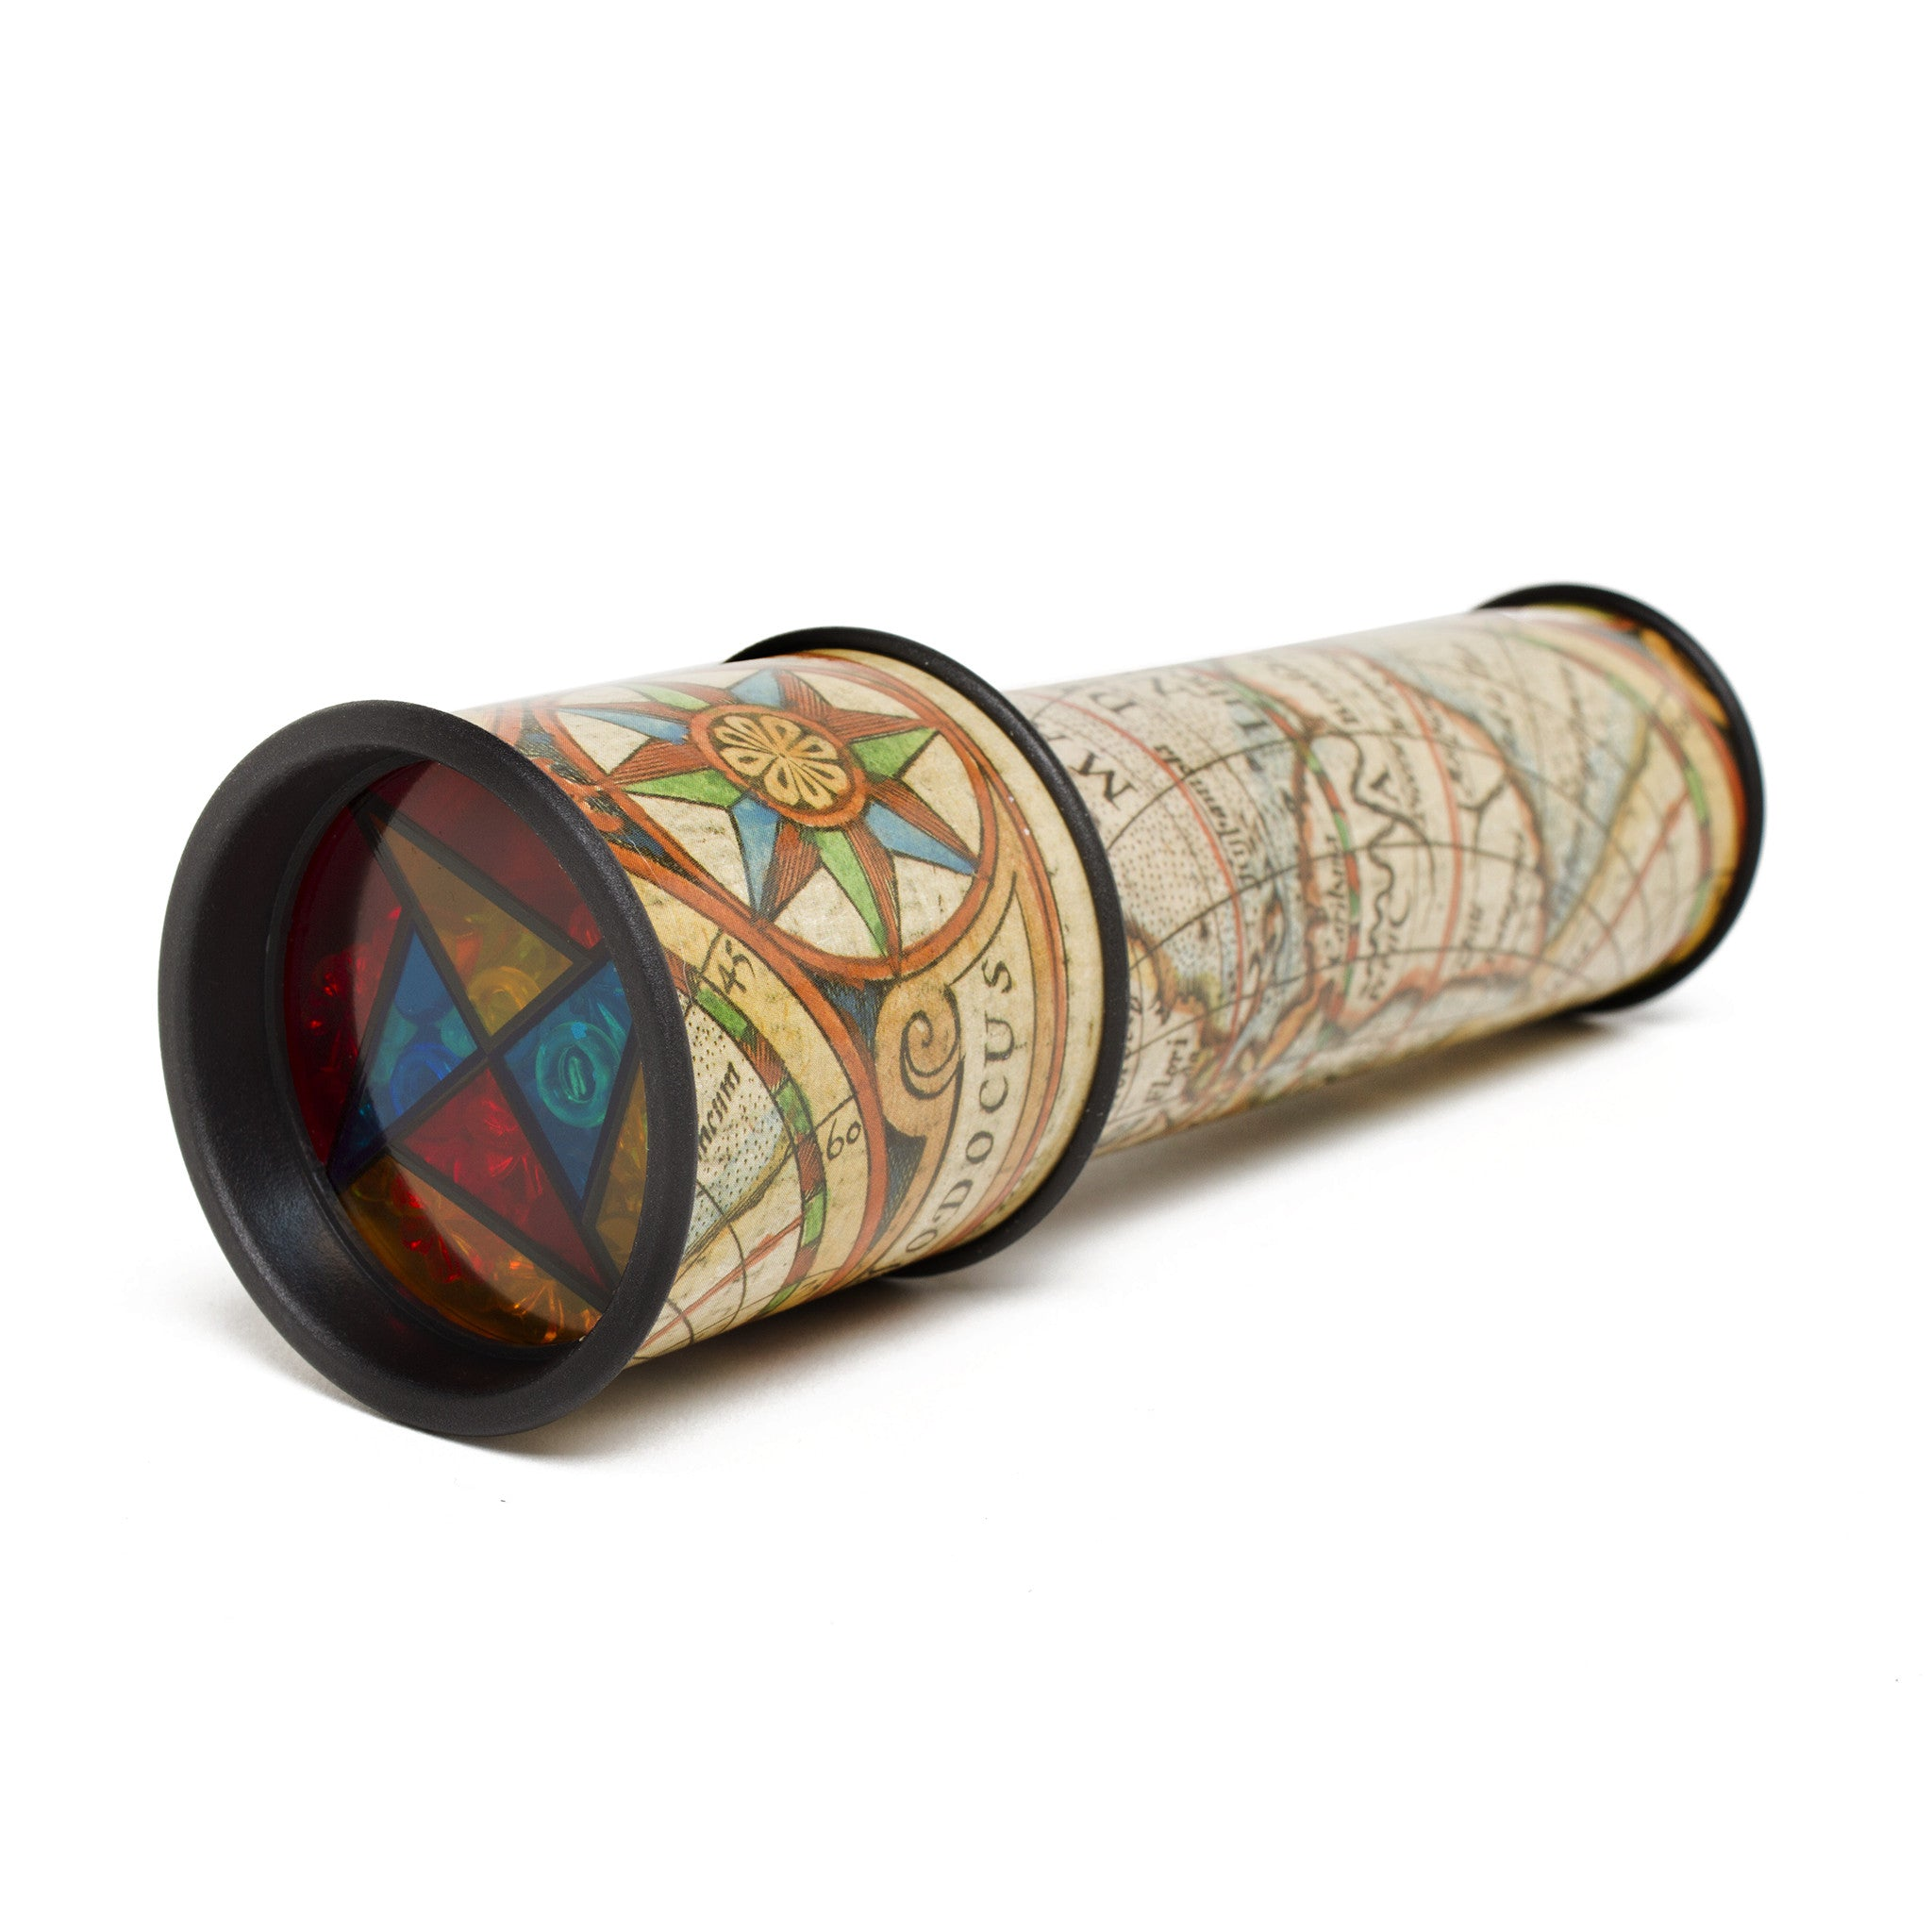 Old world map kaleidoscope the getty store old world map kaleidoscope gumiabroncs Images